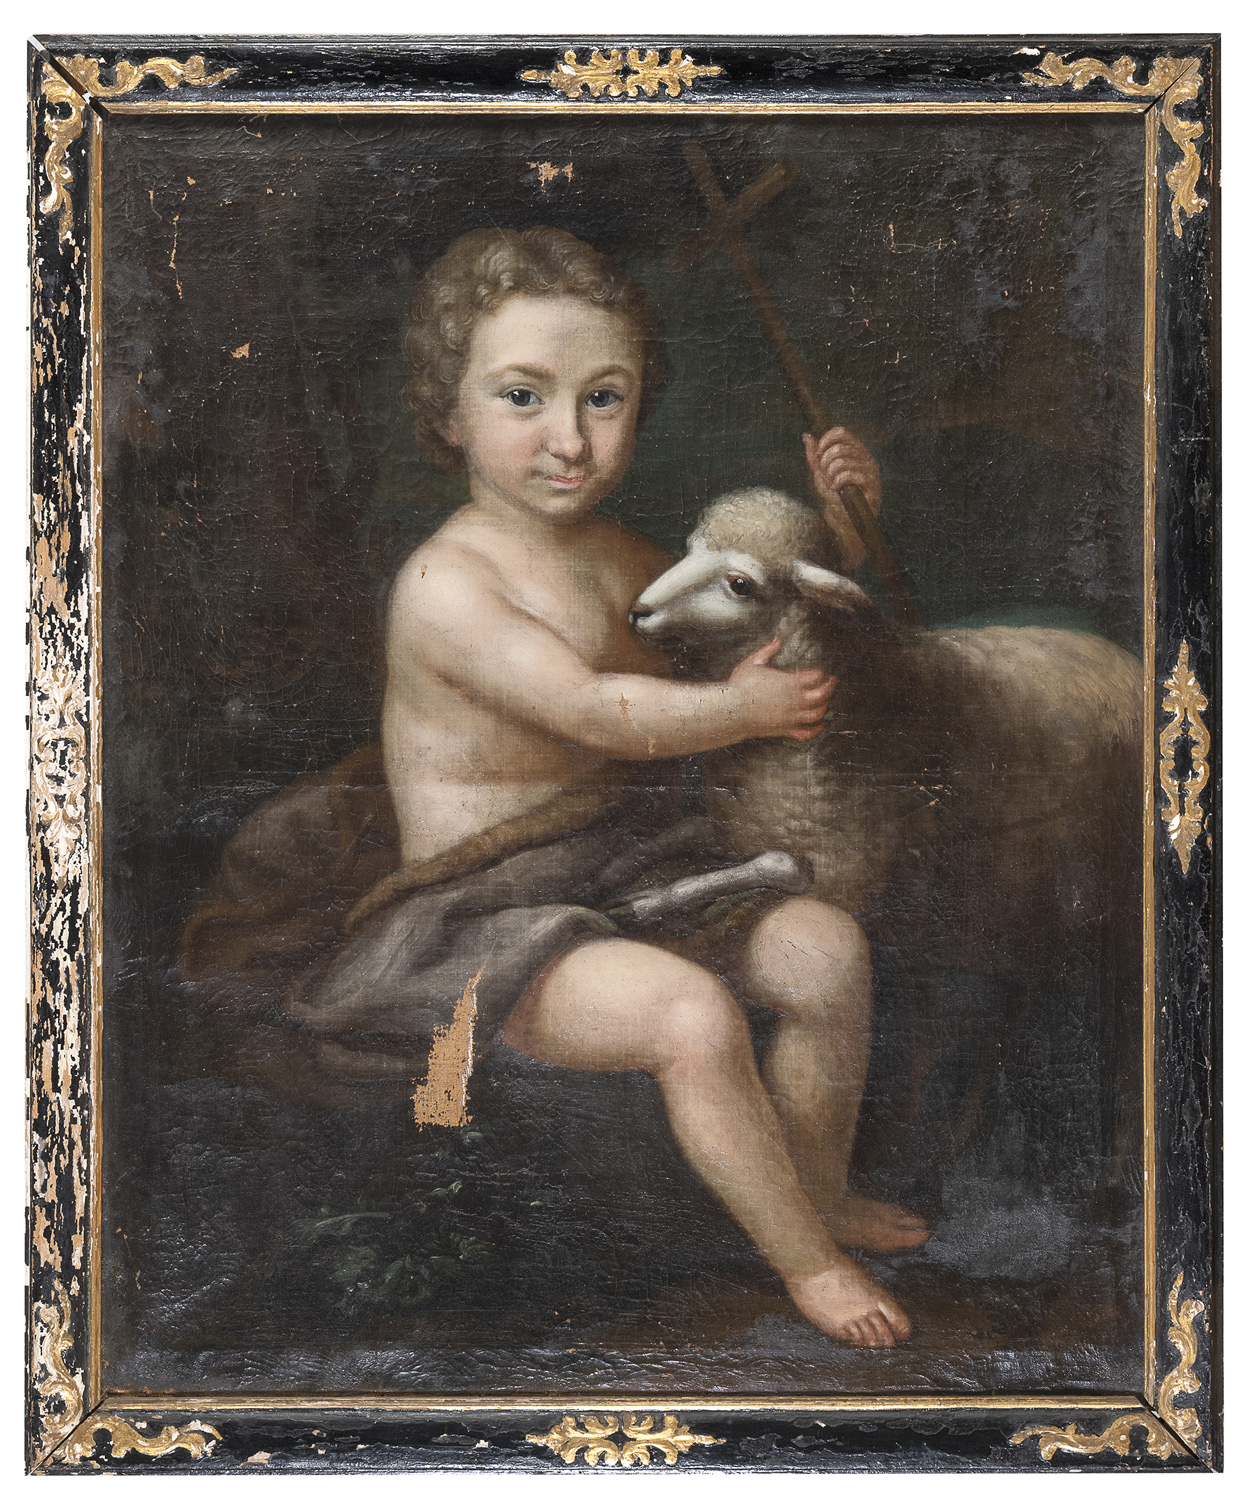 FRENCH OIL PAINTING EARLY 19TH CENTURY